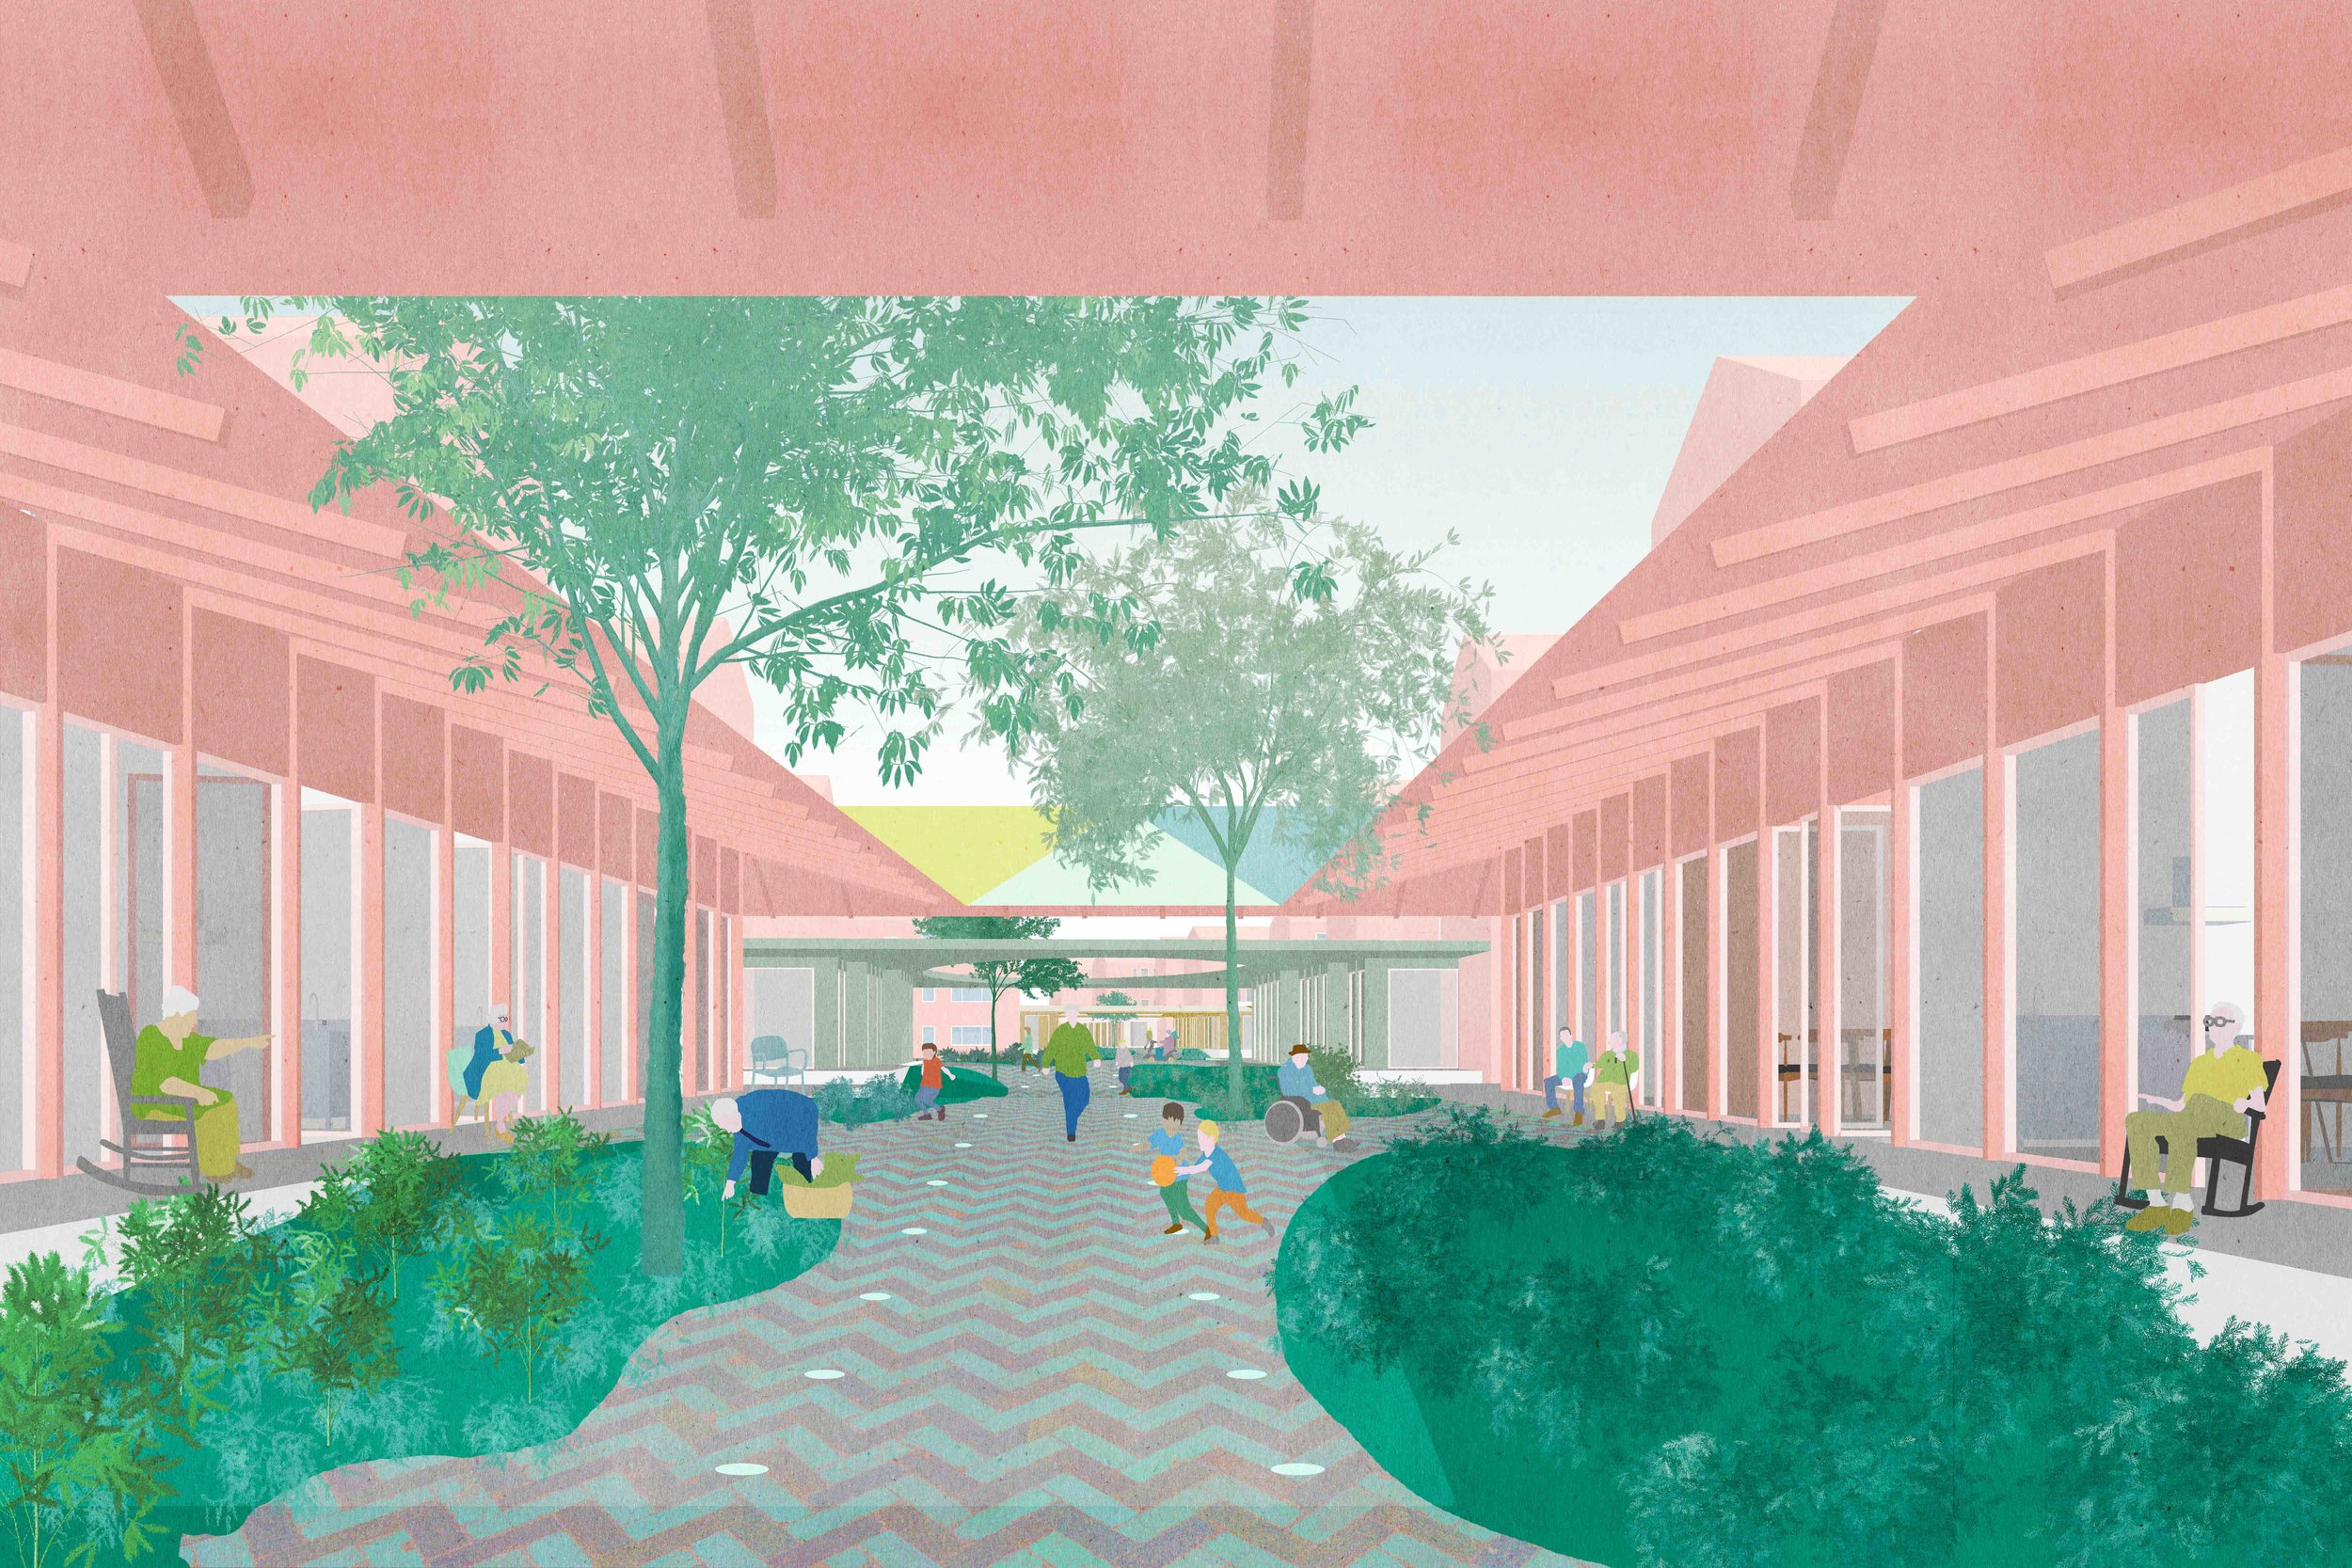 De Dwarsstraat finalist in the Who Cares Competition  Our plan 'De Dwarsstraat' for the competition Who Cares is a proposal to transform an undefined cross-street of the neighbourhood Carnisse, Rotterdam and some of its adjacent buildings into an convenient urban corridor for new living and healthcare conditions. Plan developed for diederendirrix architects, together with Vitaalzorgvast, Delva en UNITiD.